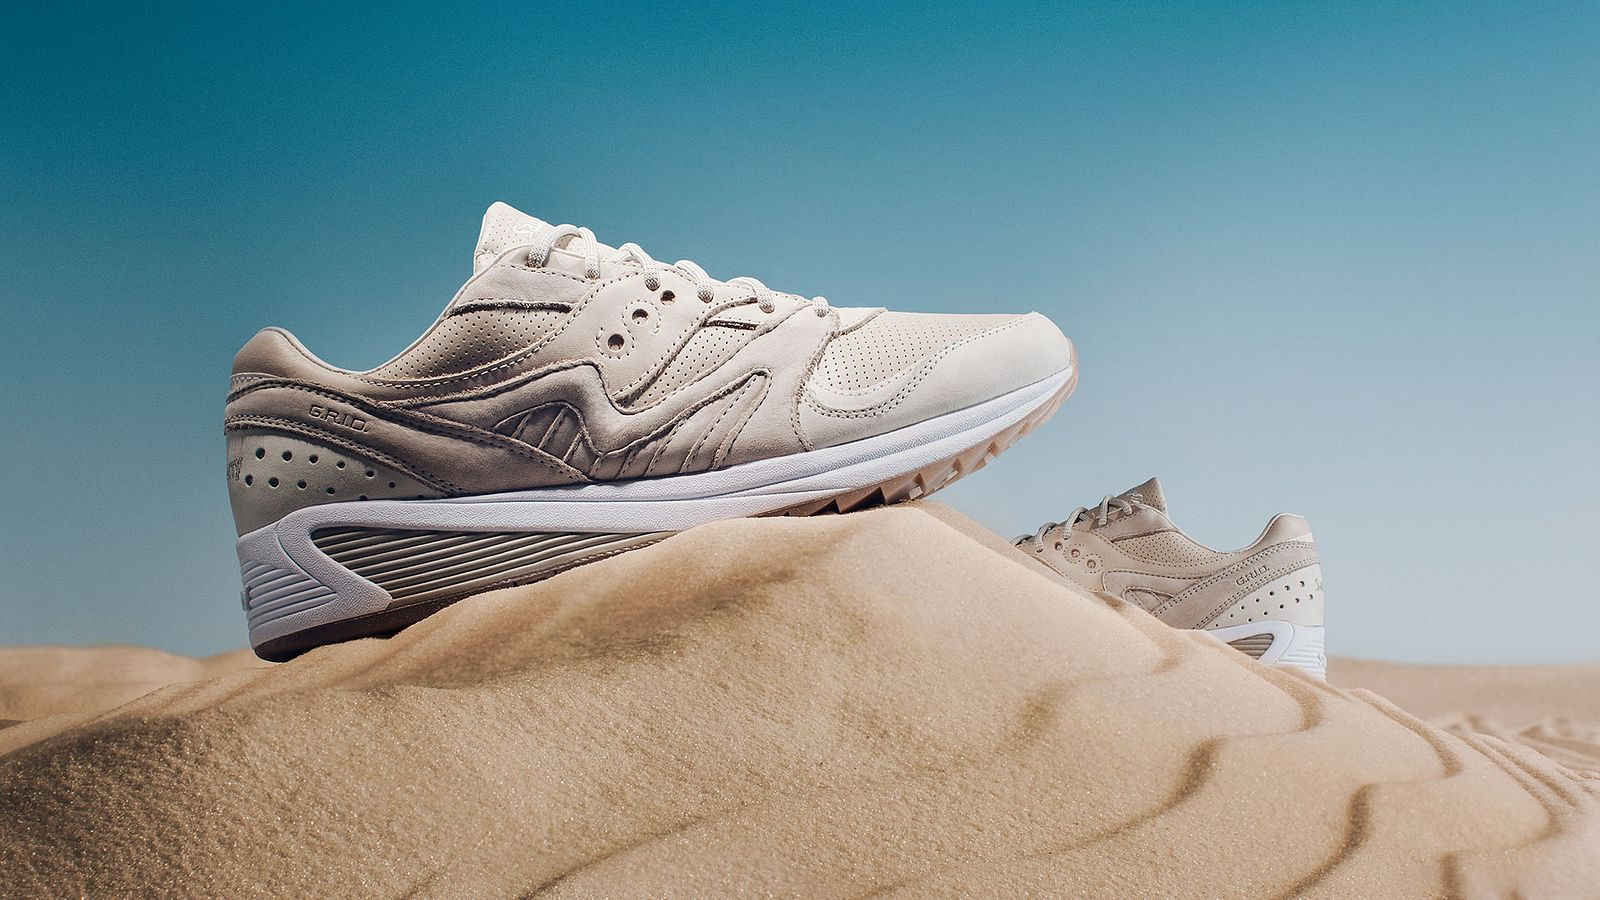 Desert shoe for Saucony Originals, styled by Someoddpilot